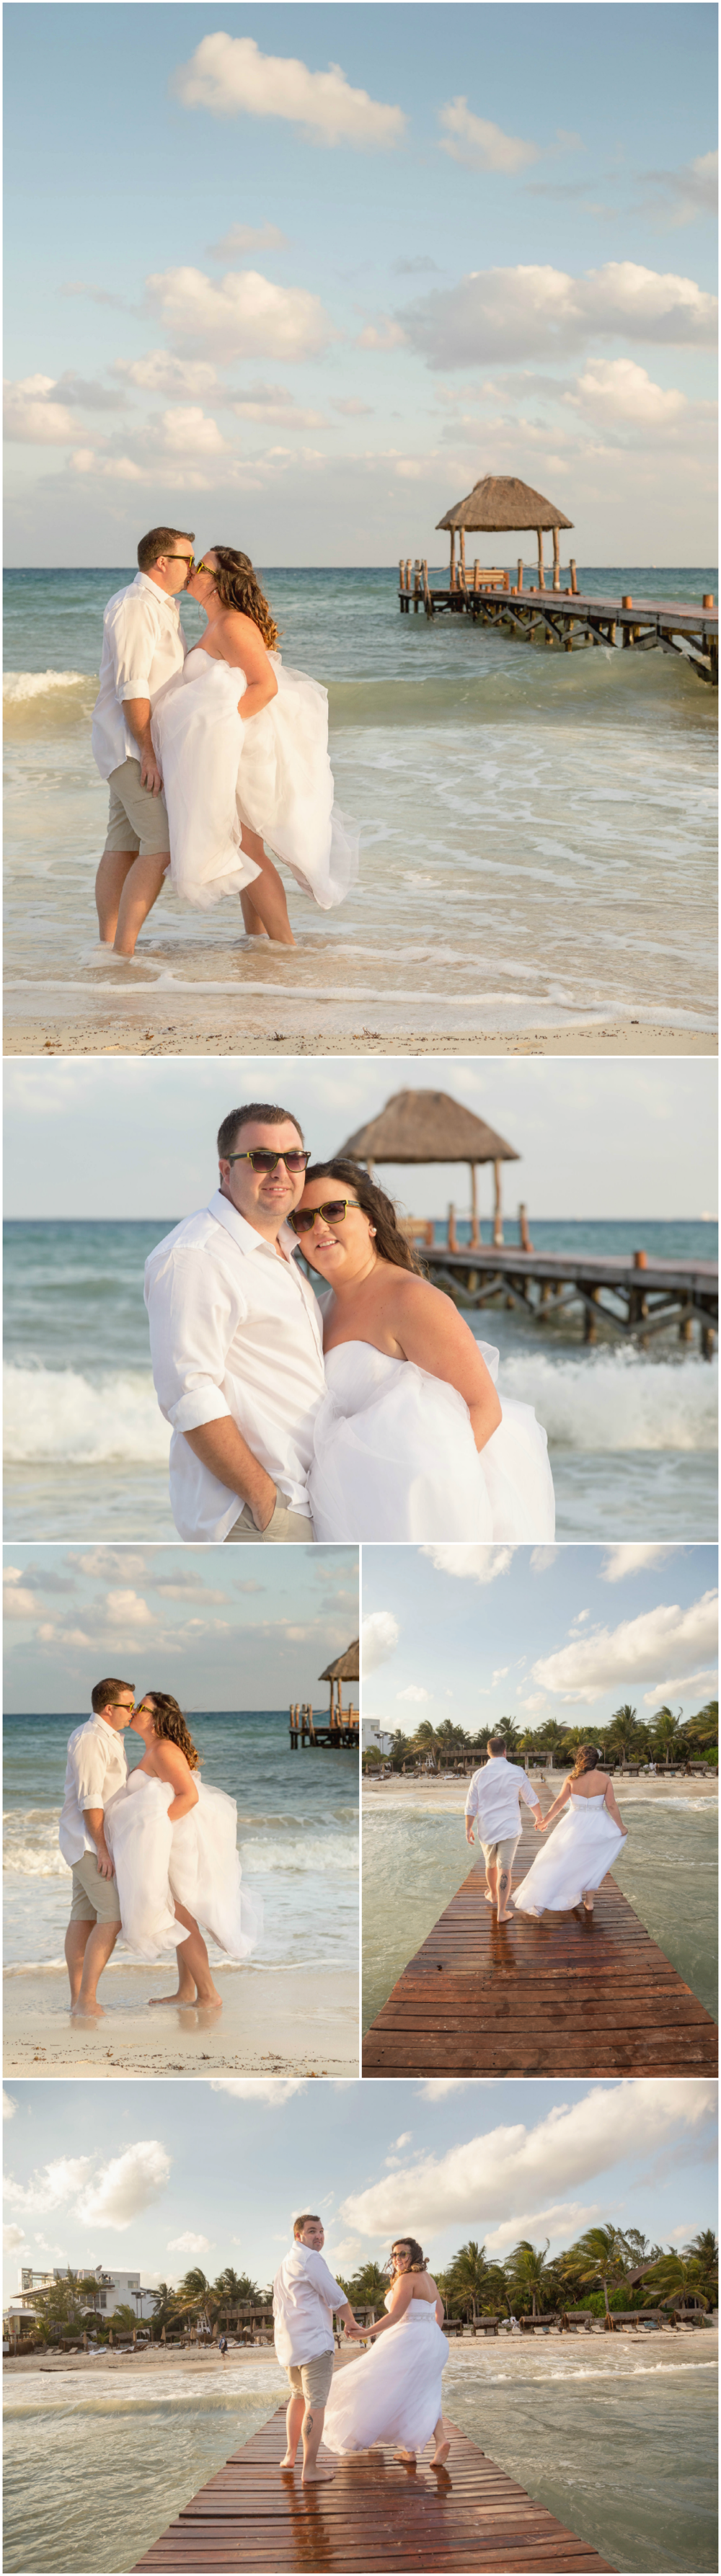 riviera-maya-wedding-ttd_2.png